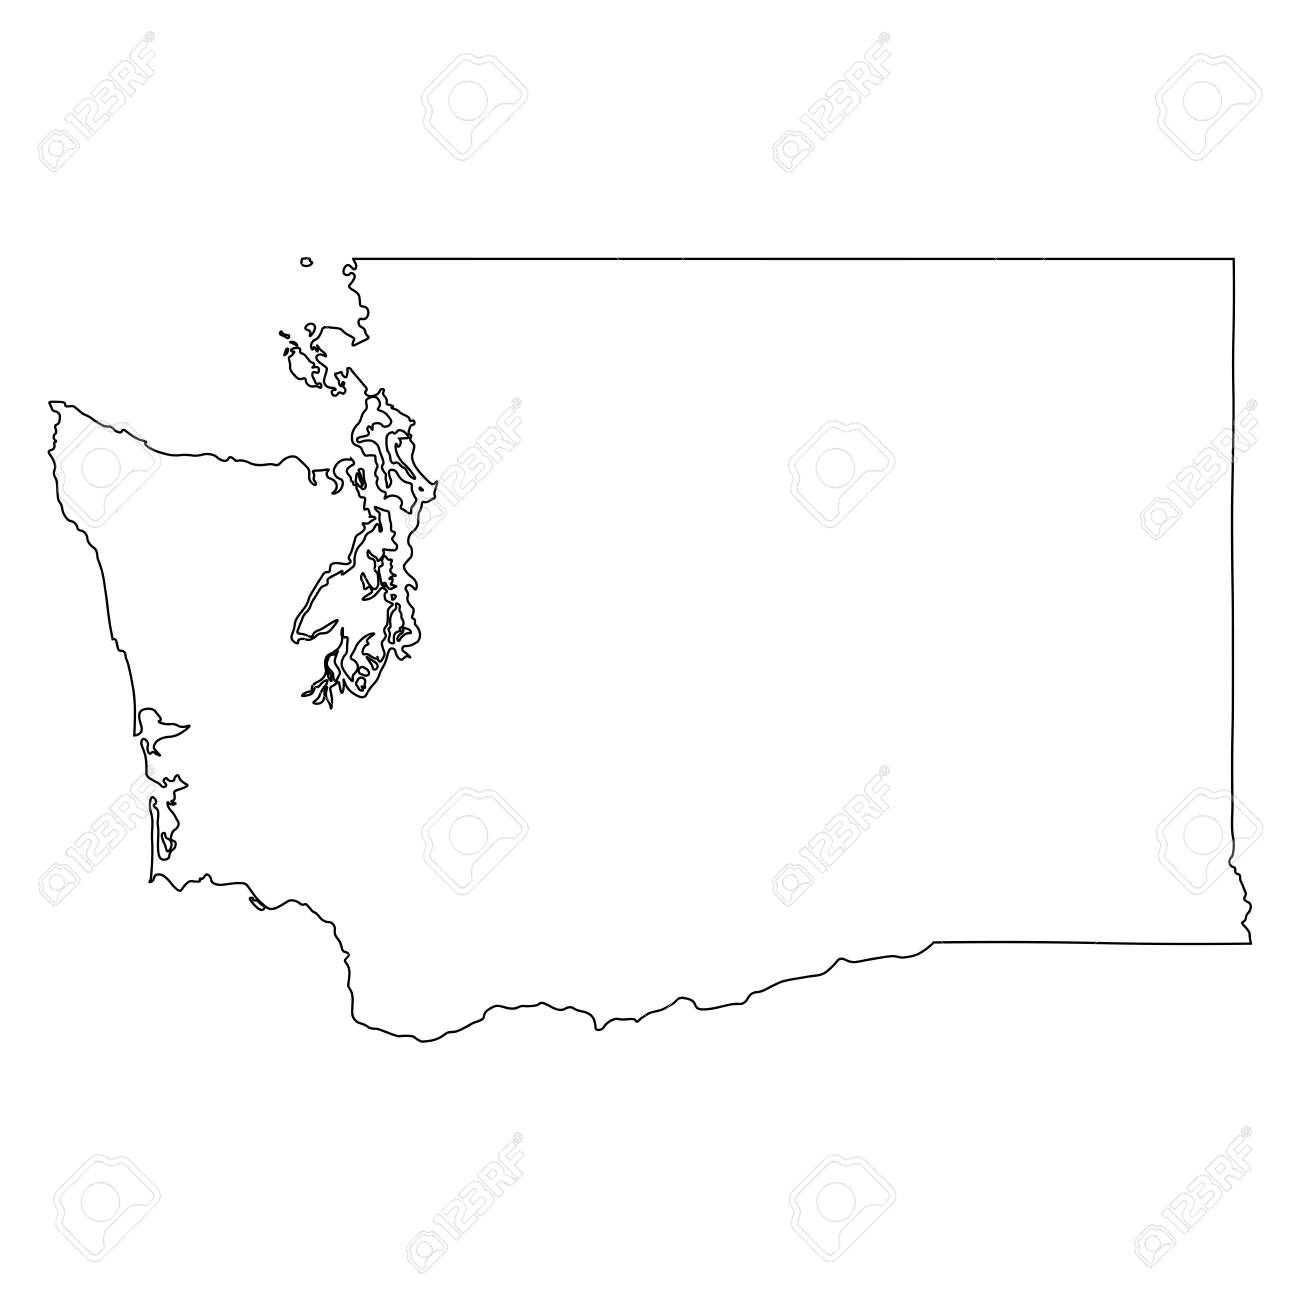 Washington WA state Map USA. Black outline mao isolated on a white background. EPS Vector - 149990997